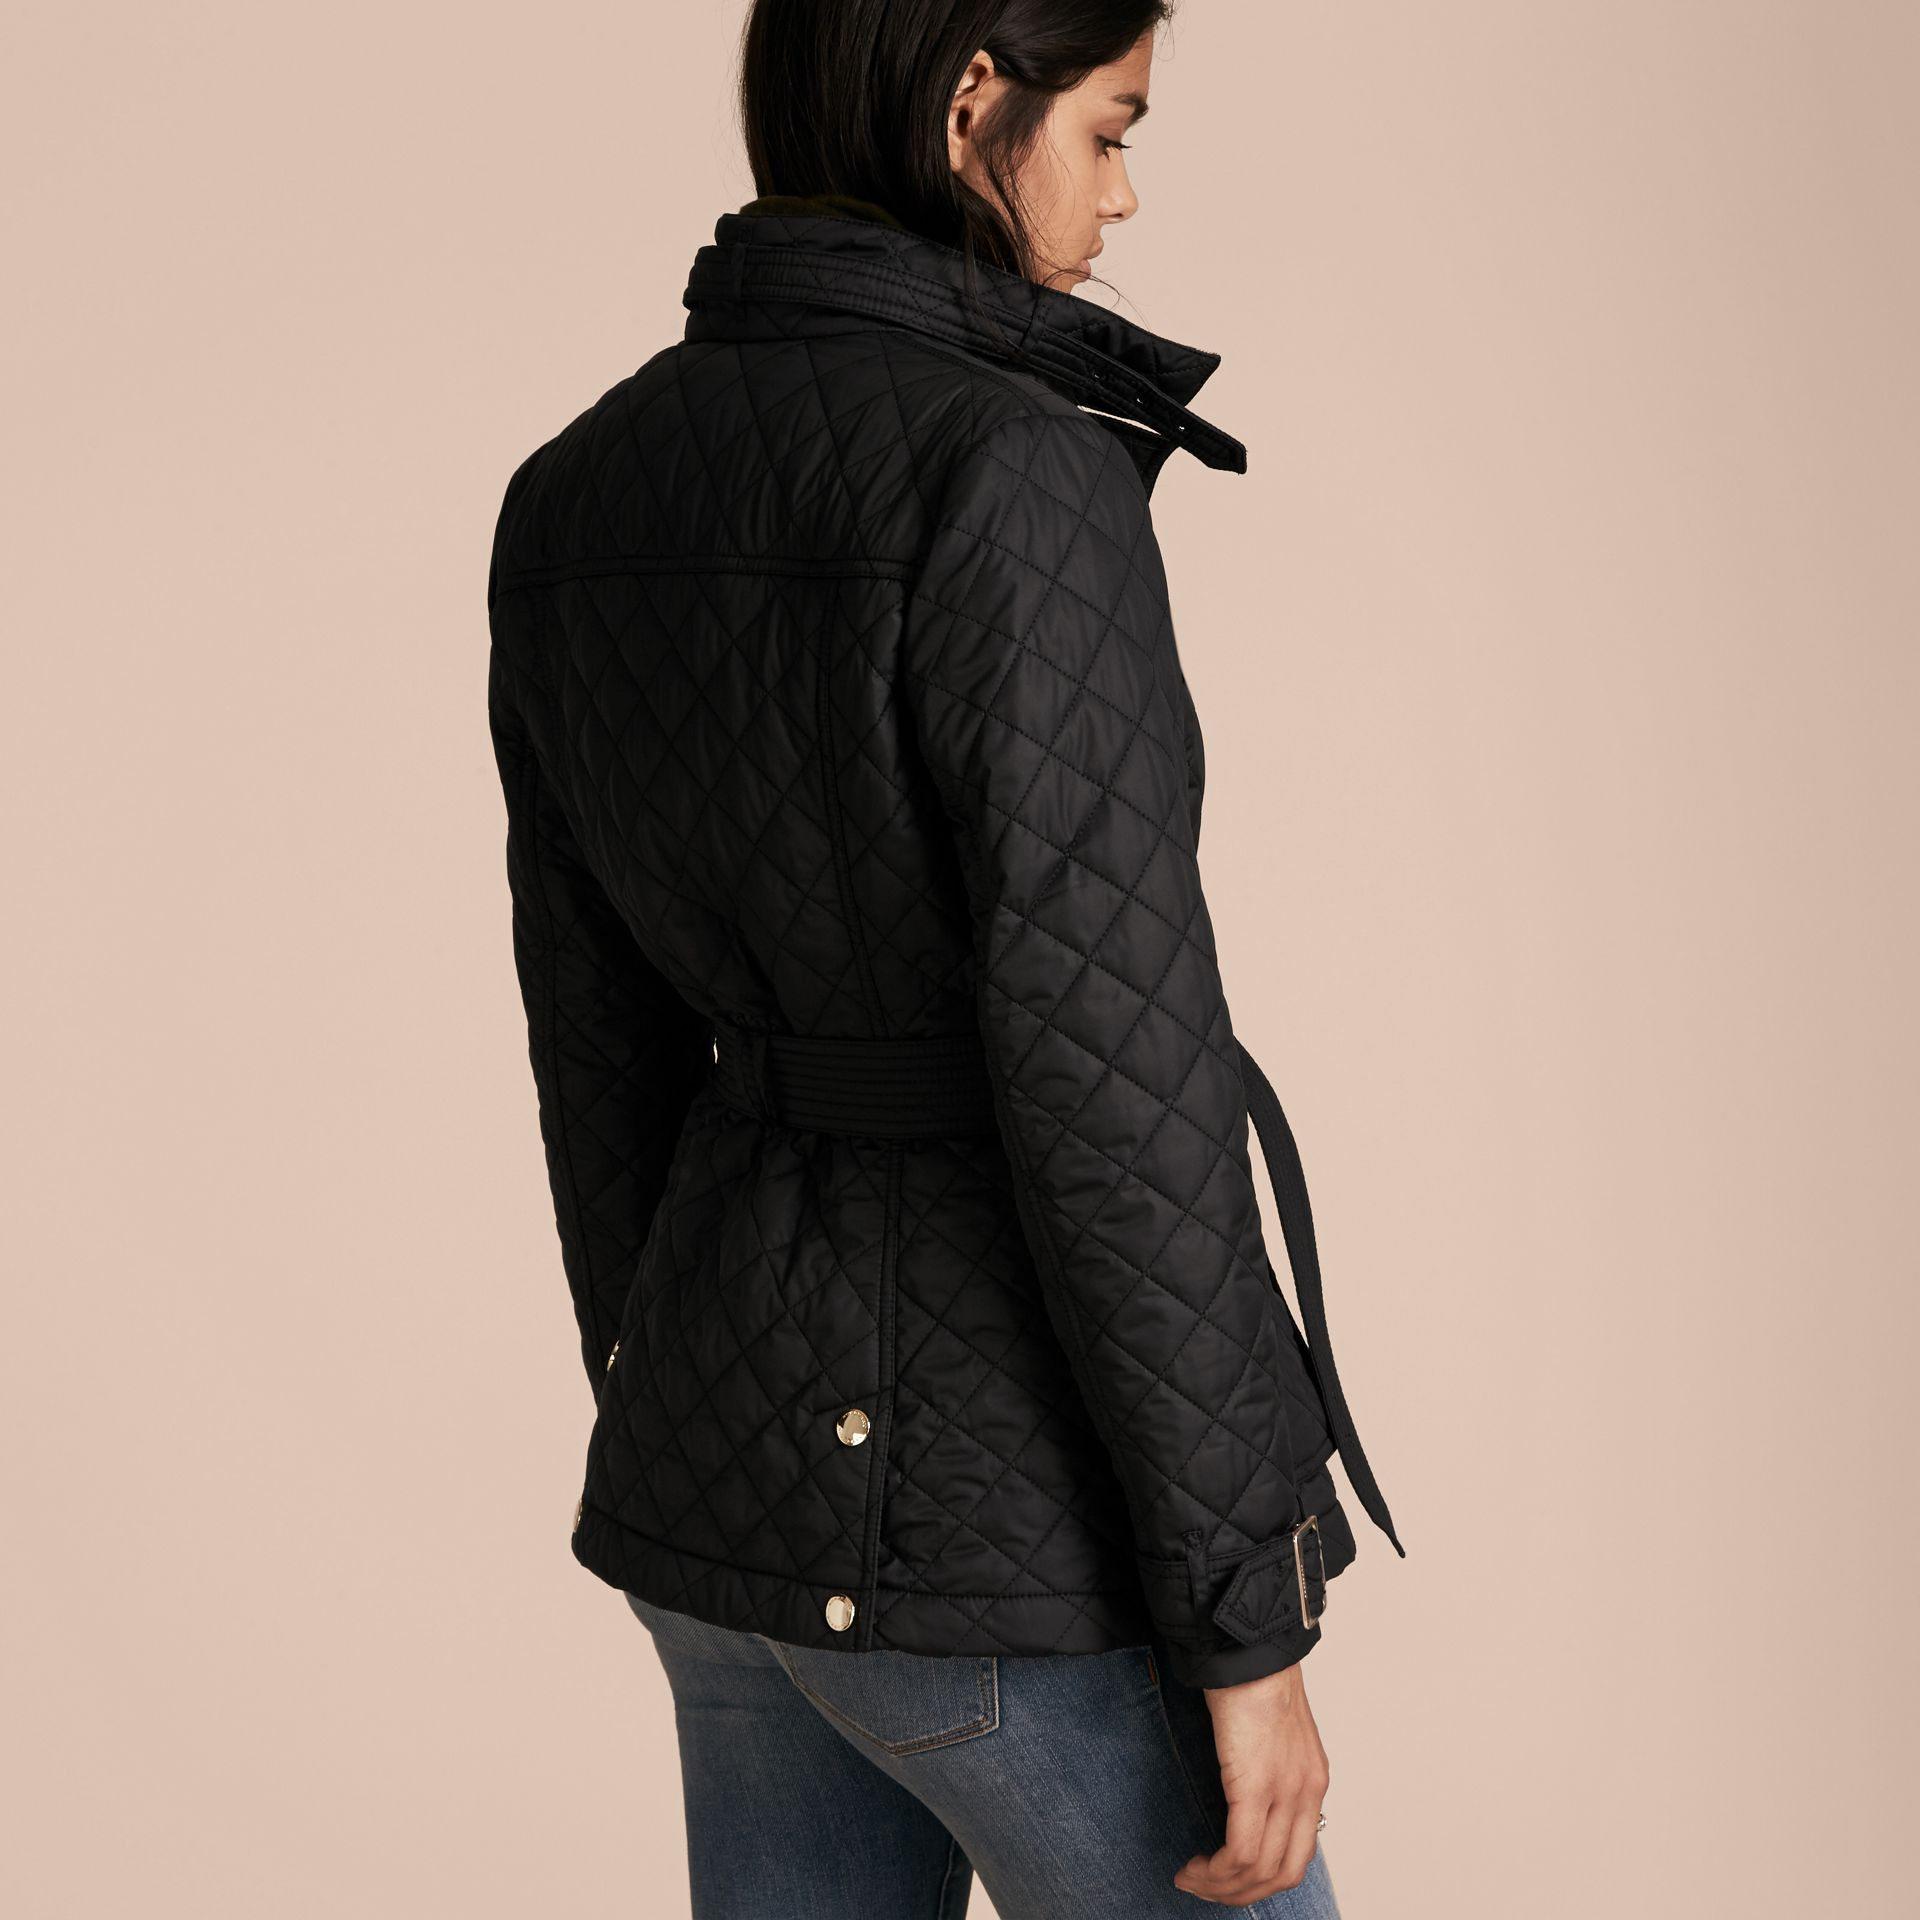 Black Buckle Detail Technical Field Jacket Black - gallery image 3